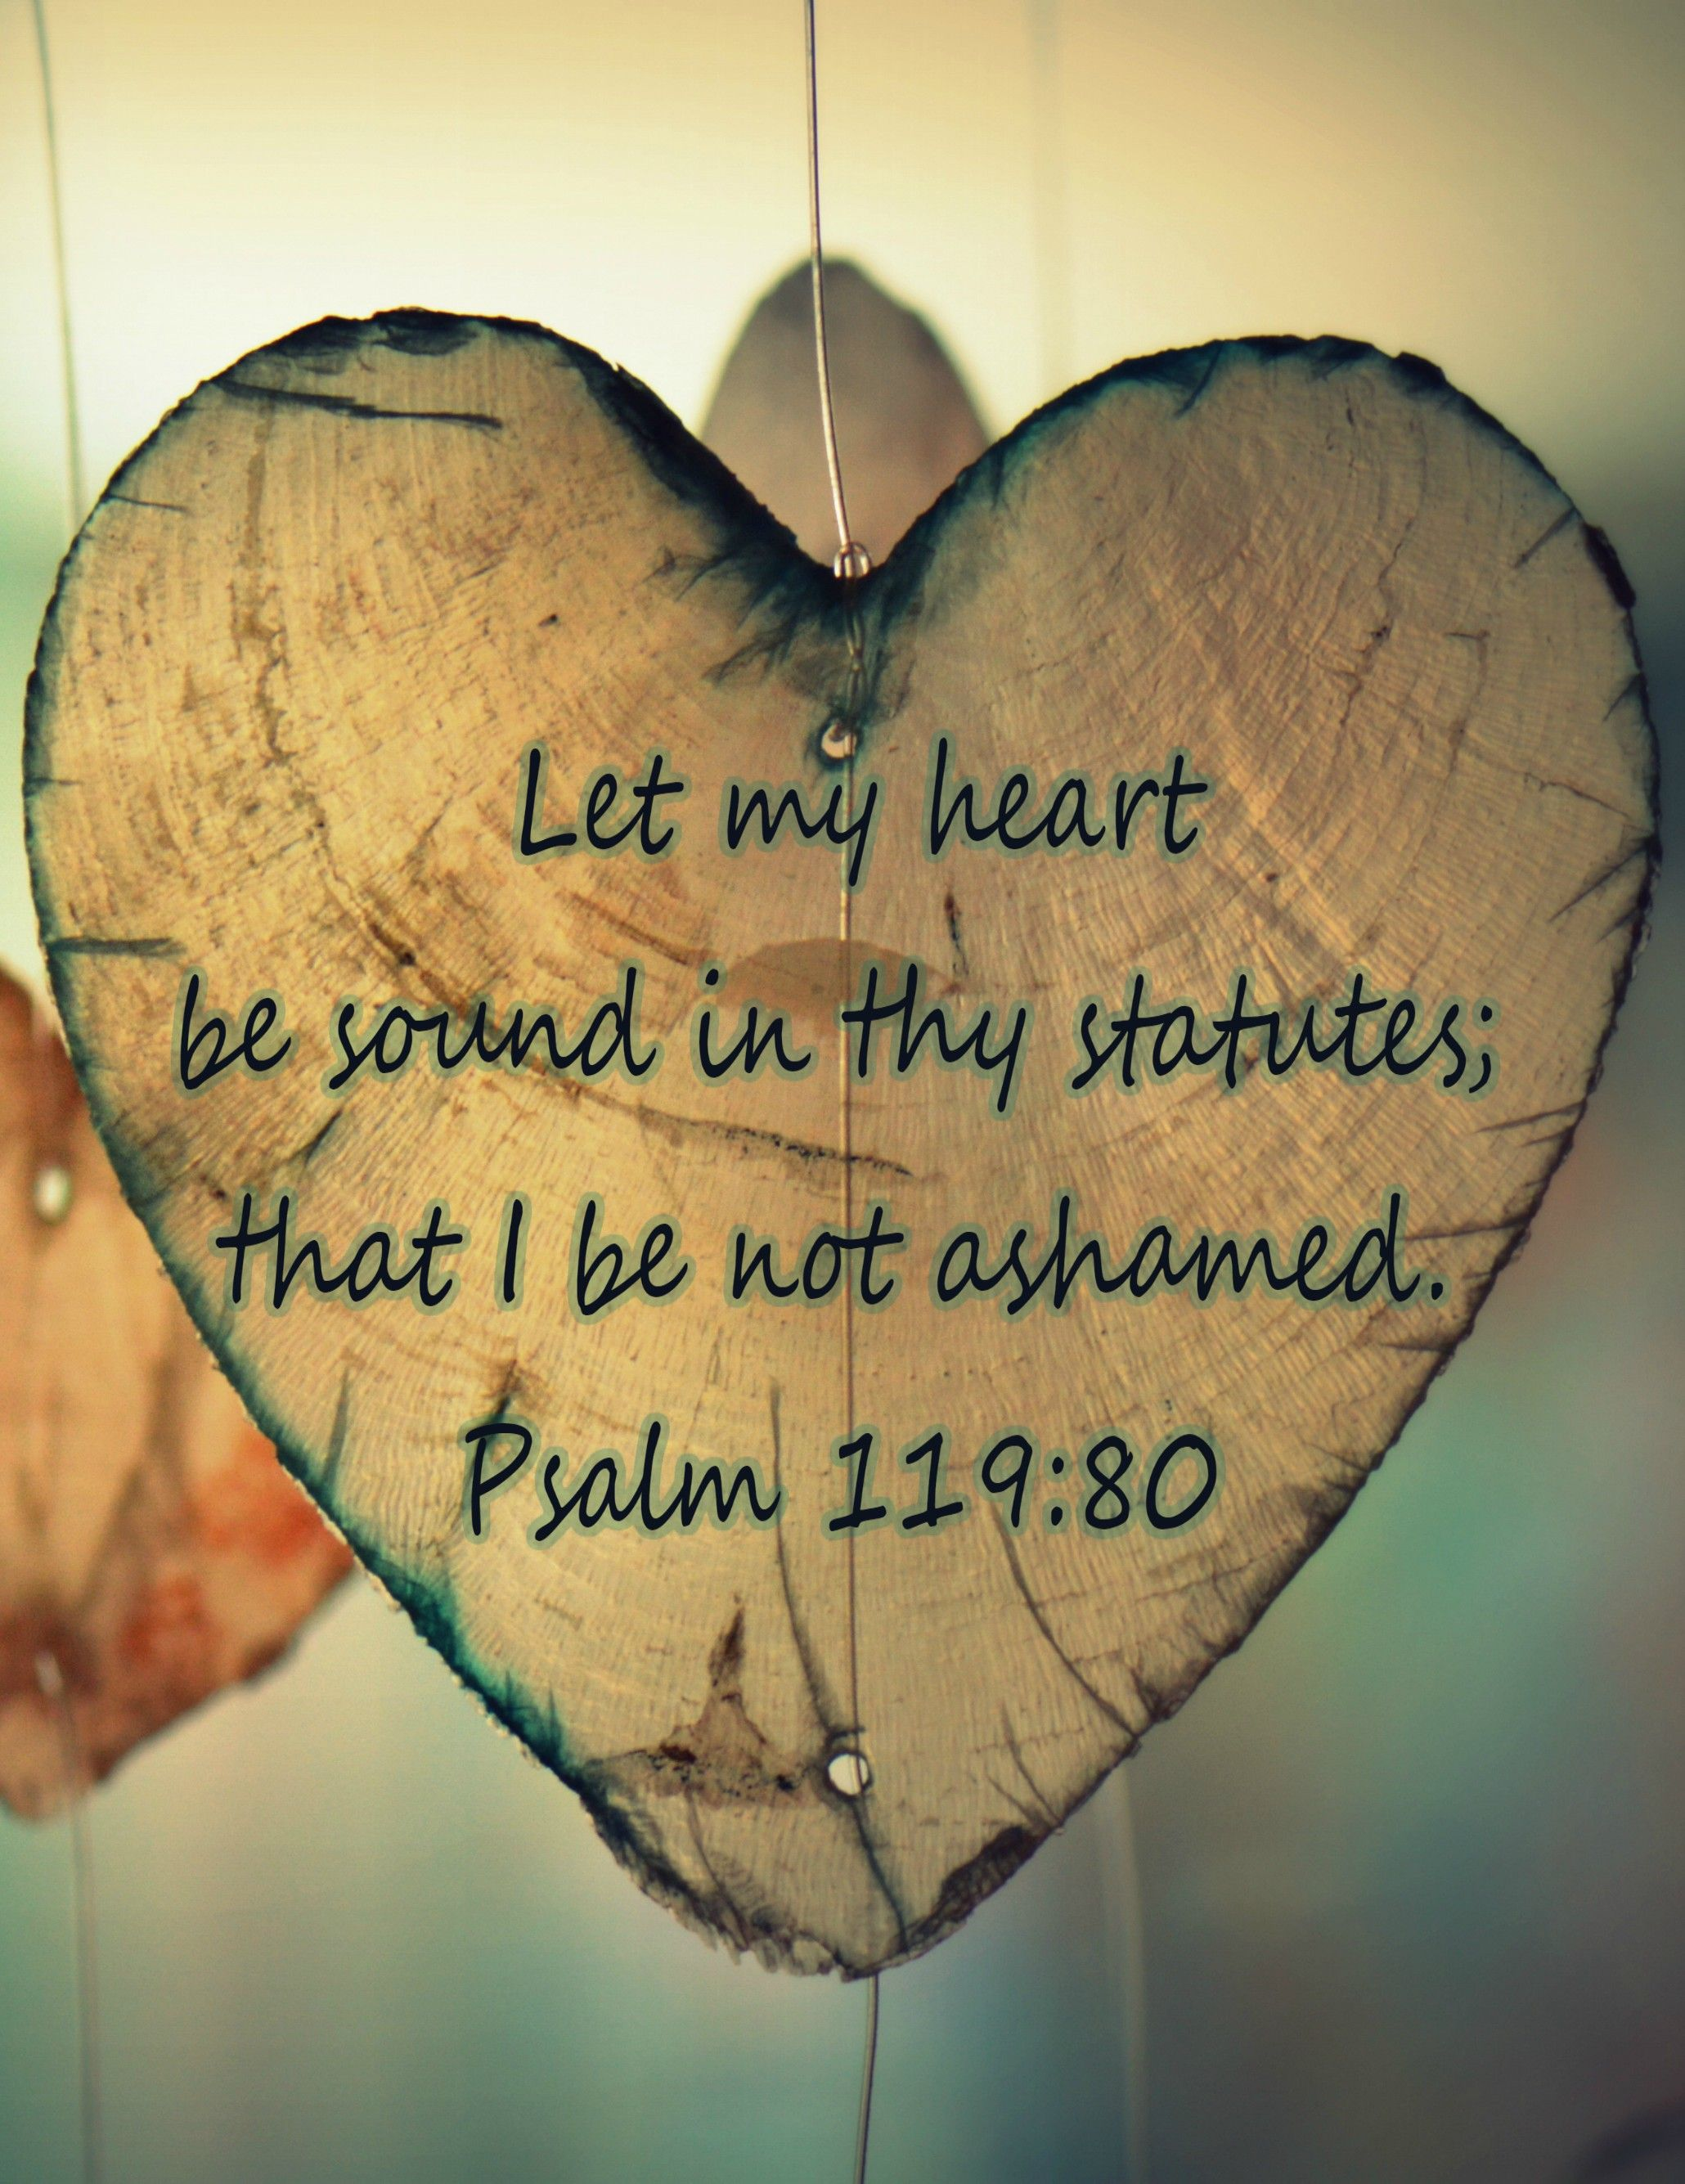 Psalm 119:80 (KJV) Let my heart be sound in thy statutes ...